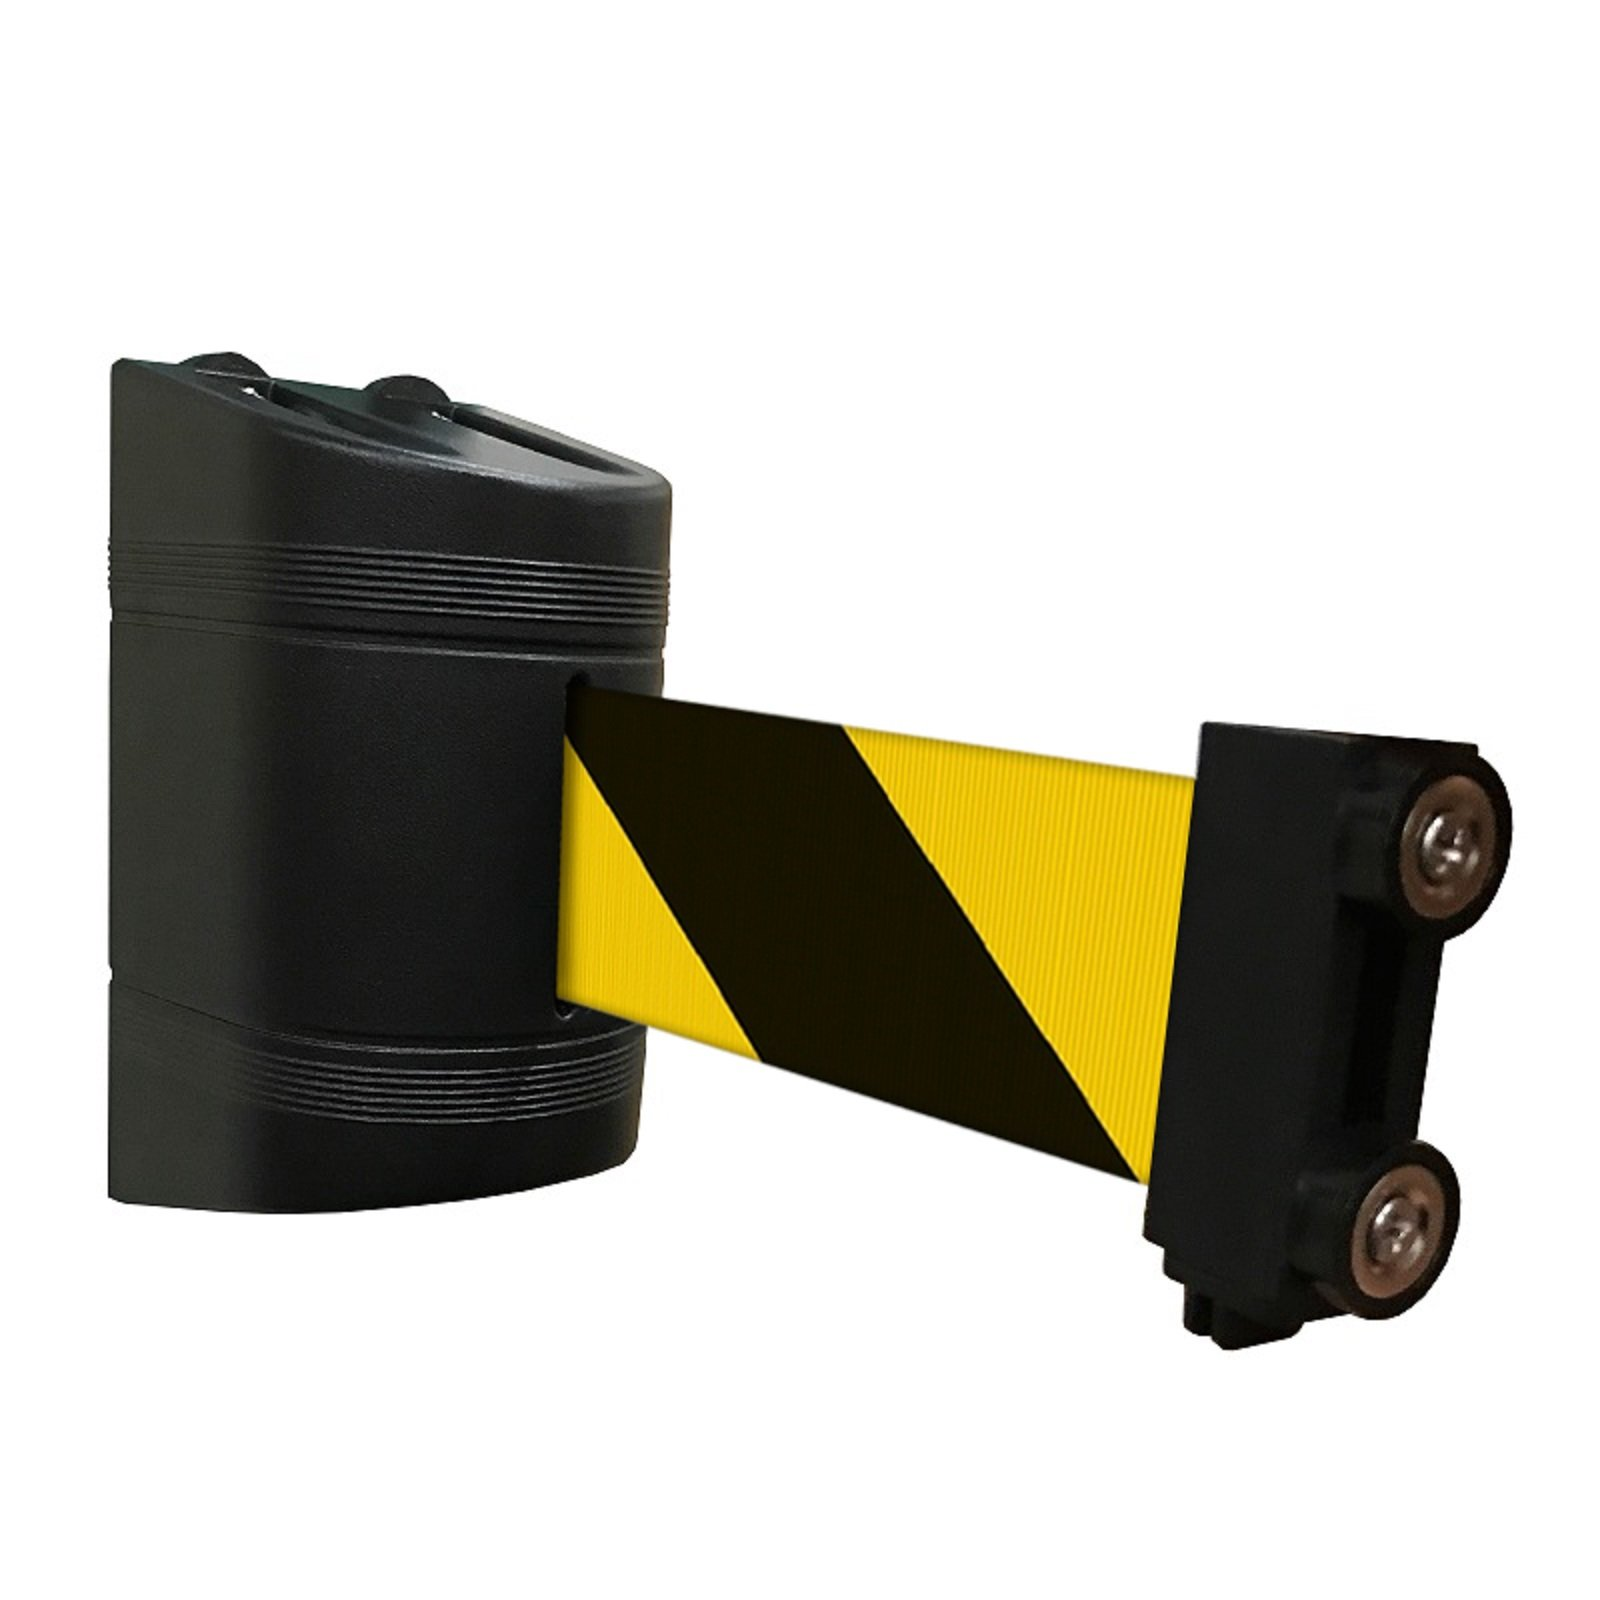 Magnetic Retractable Wall Barrier 120''L (YEL/Blk) by Crowd Control Center